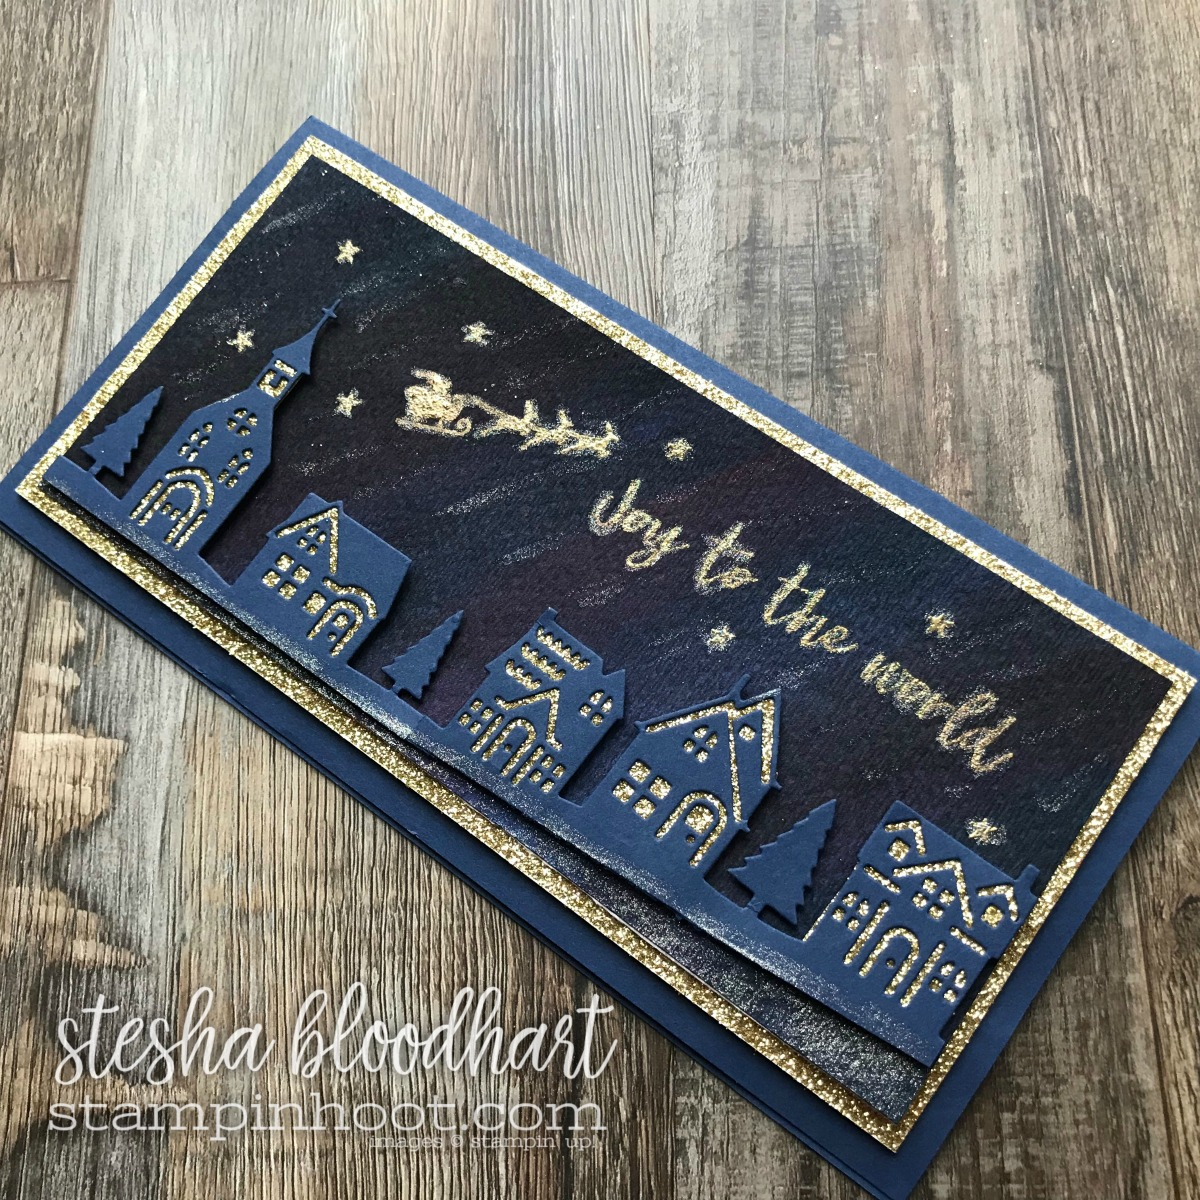 Hearts Come Home Bundle by Stampin' Up! in the 2017 Holiday Catalog for #tgifc138 Inspiration Challenge - Christmas Carols #steshabloodhart #stampinhoot